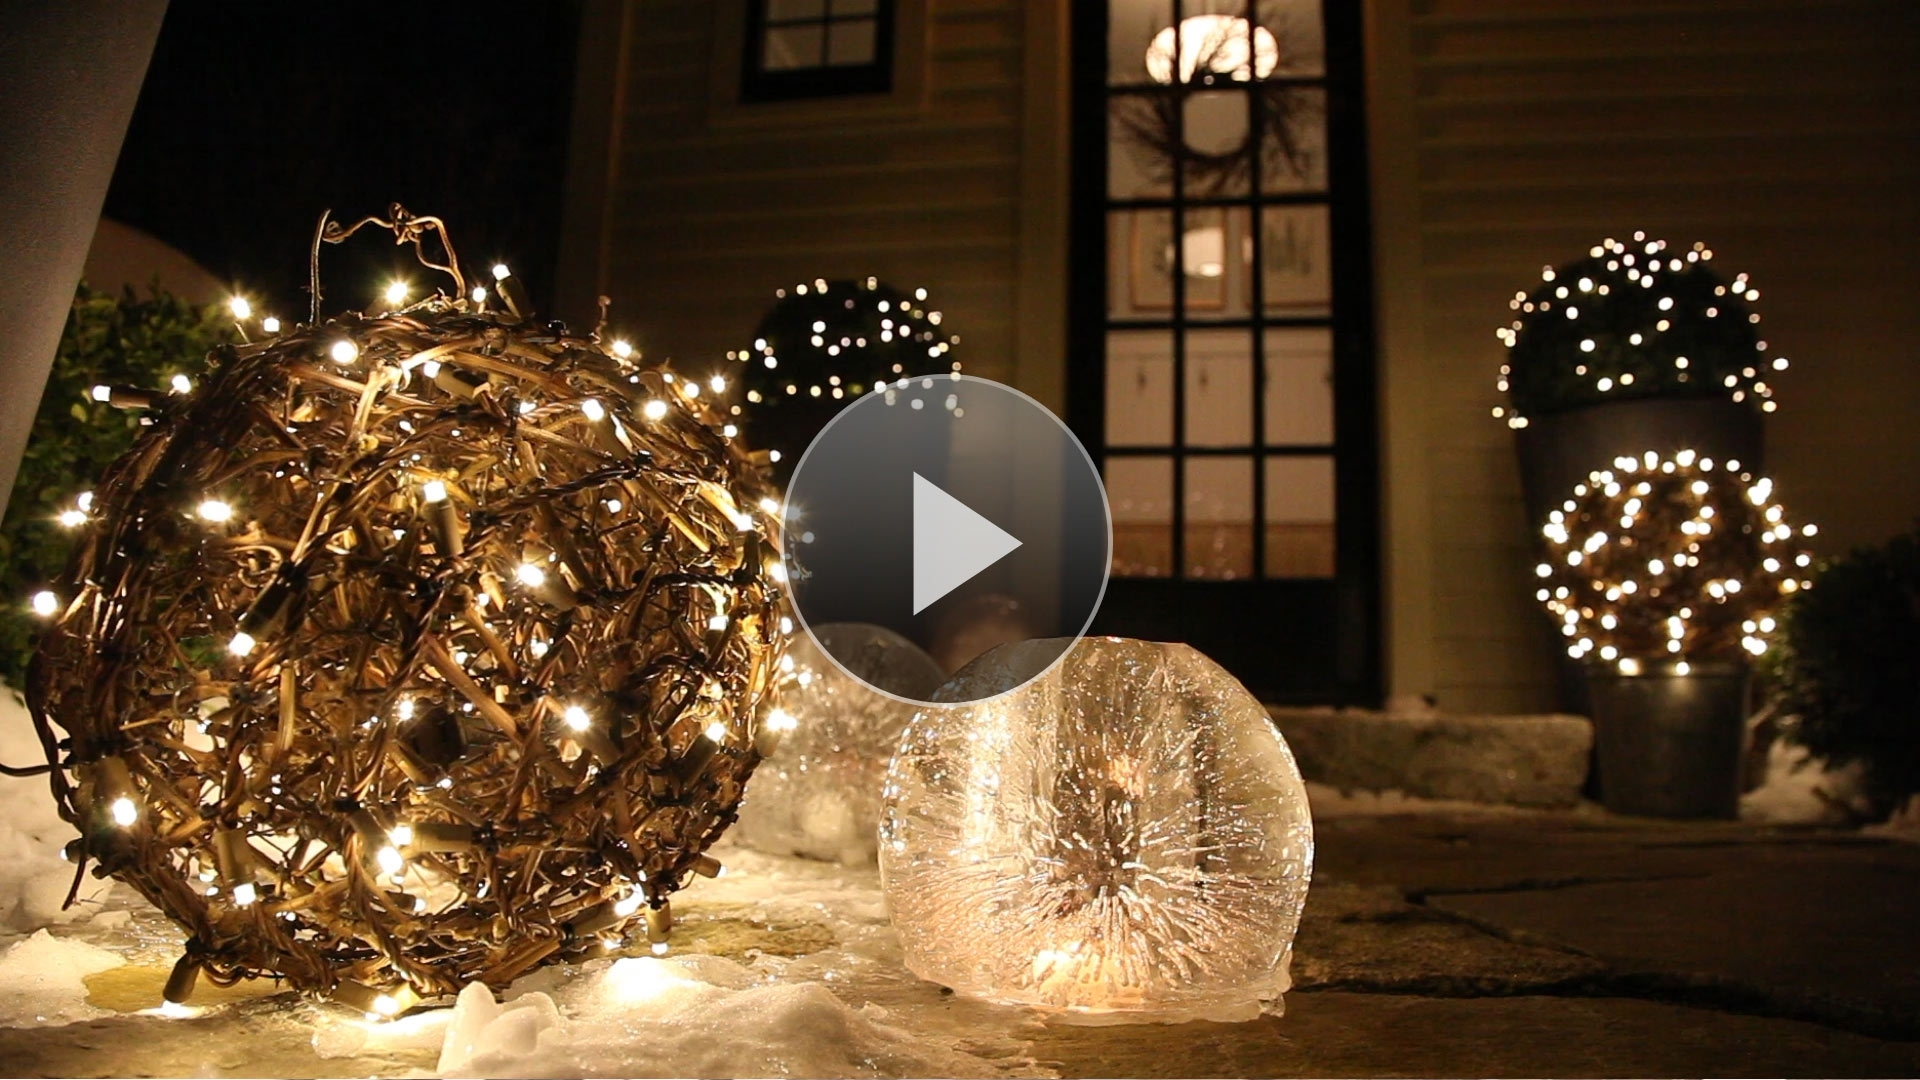 Diy : Outdoor Hanging Lit Spheres Balsam Hill Garden Sphere Lights For Outdoor Hanging Sphere Lights (View 8 of 15)